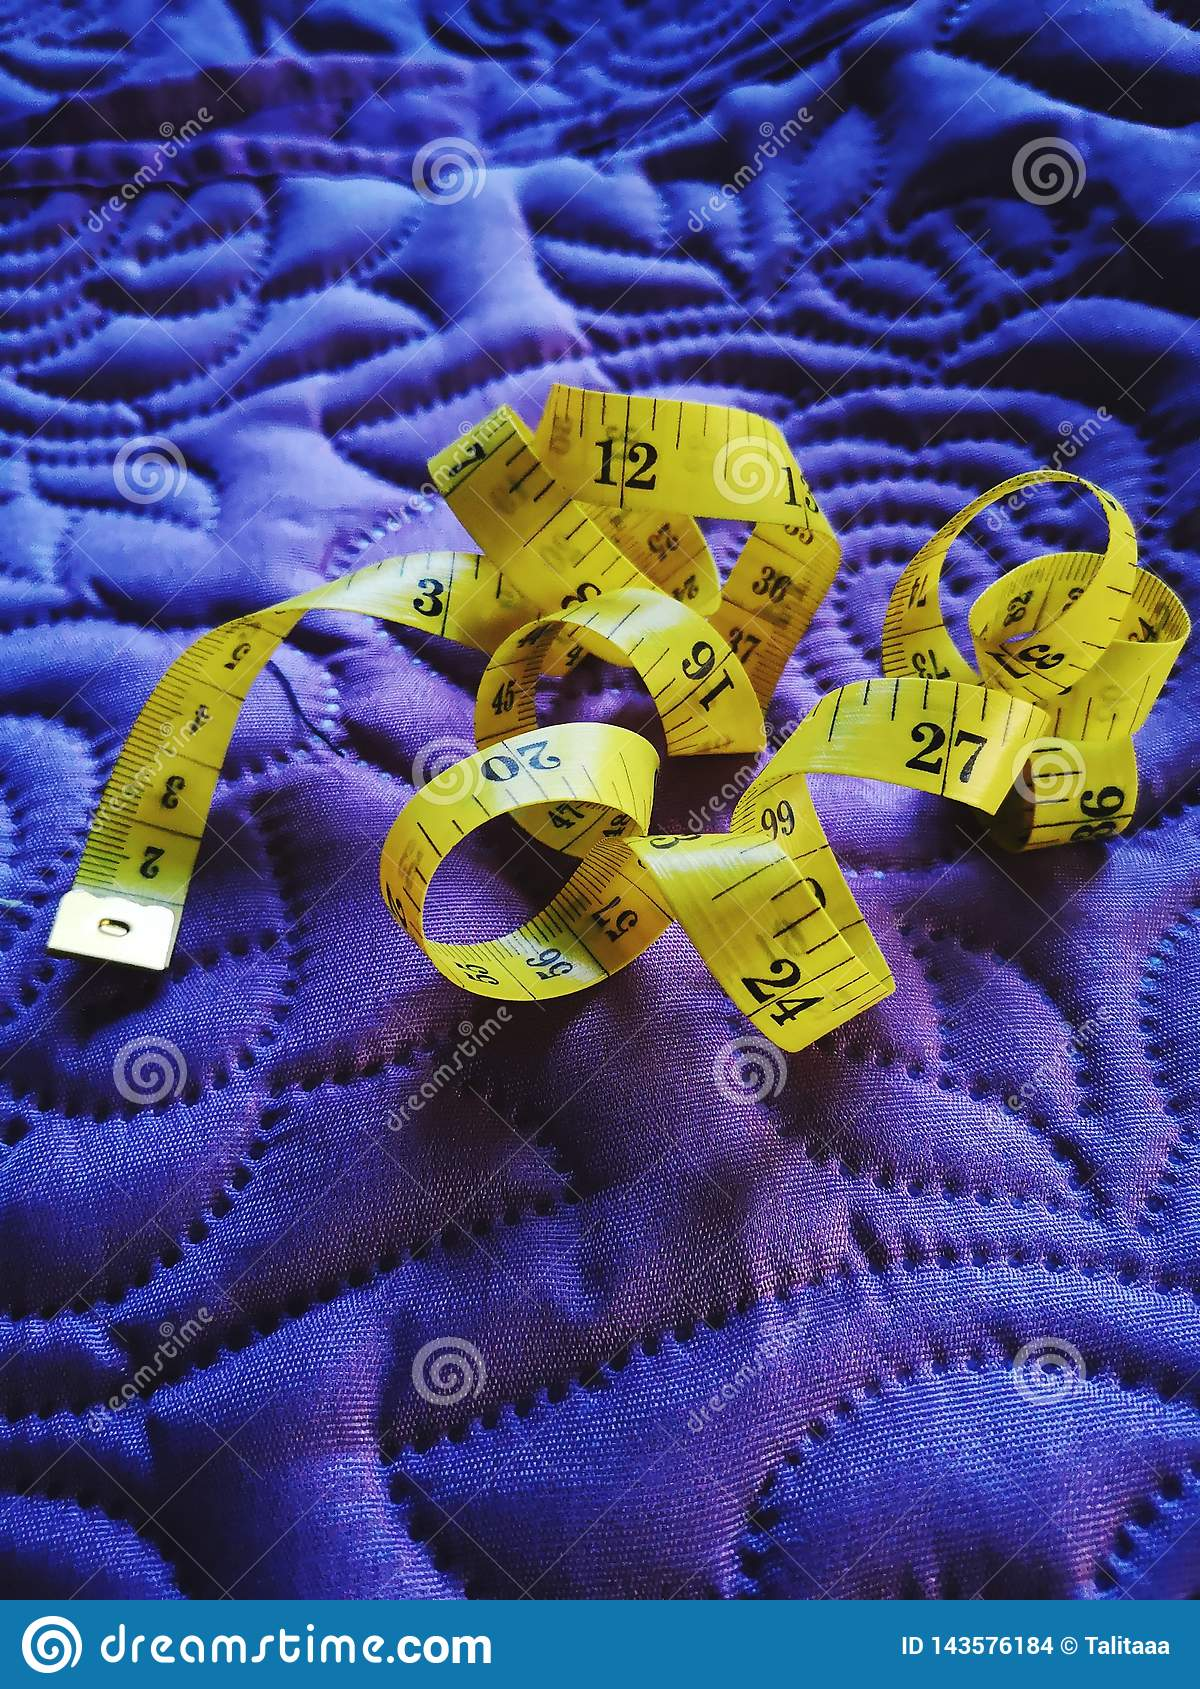 Sewing. yellow measuring tape for sewing on purple material